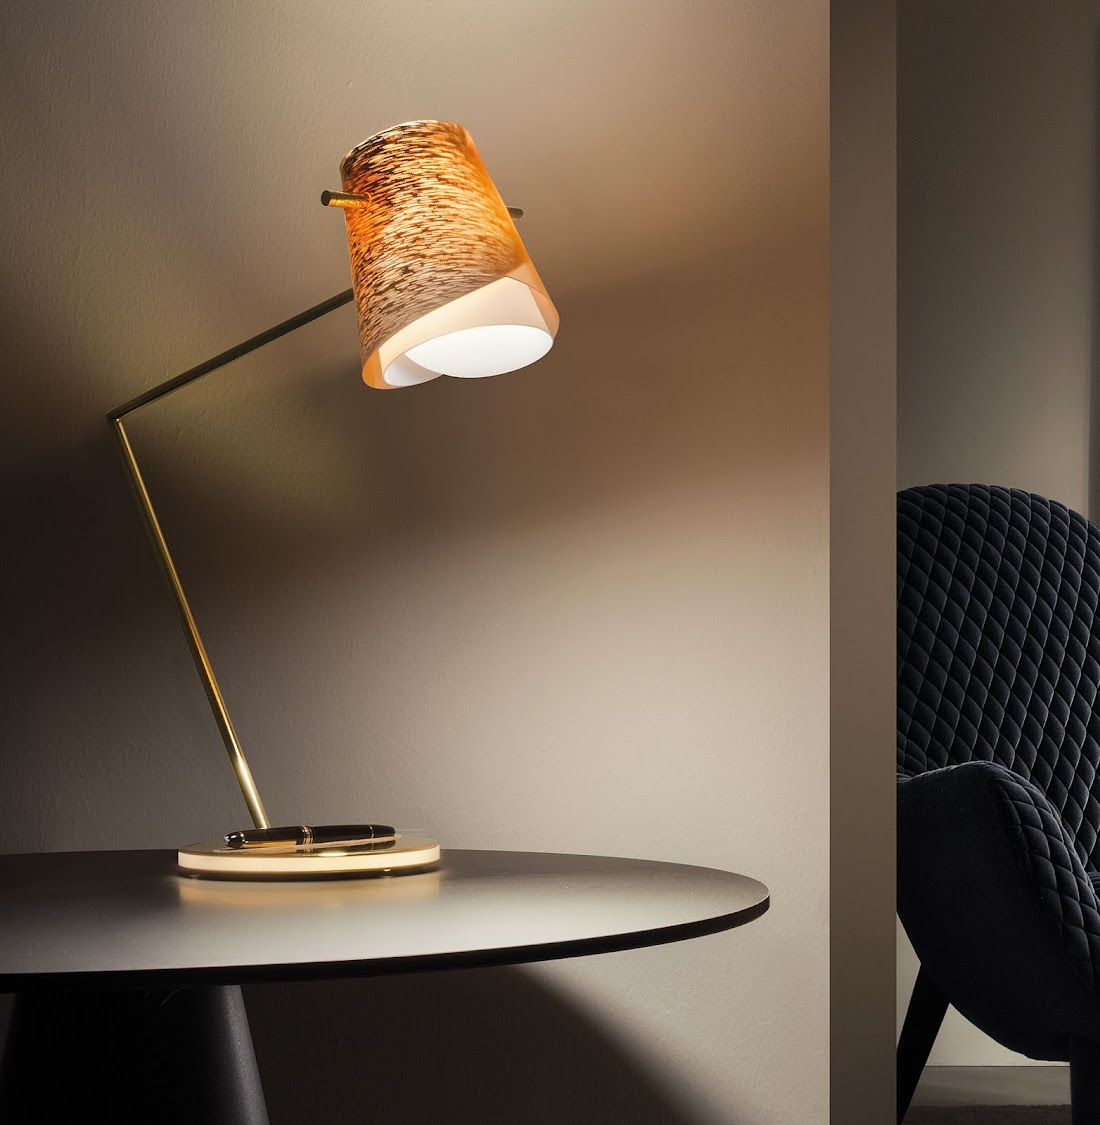 Slamp and Montblanc have collaborated to create the Overlay desk lamp